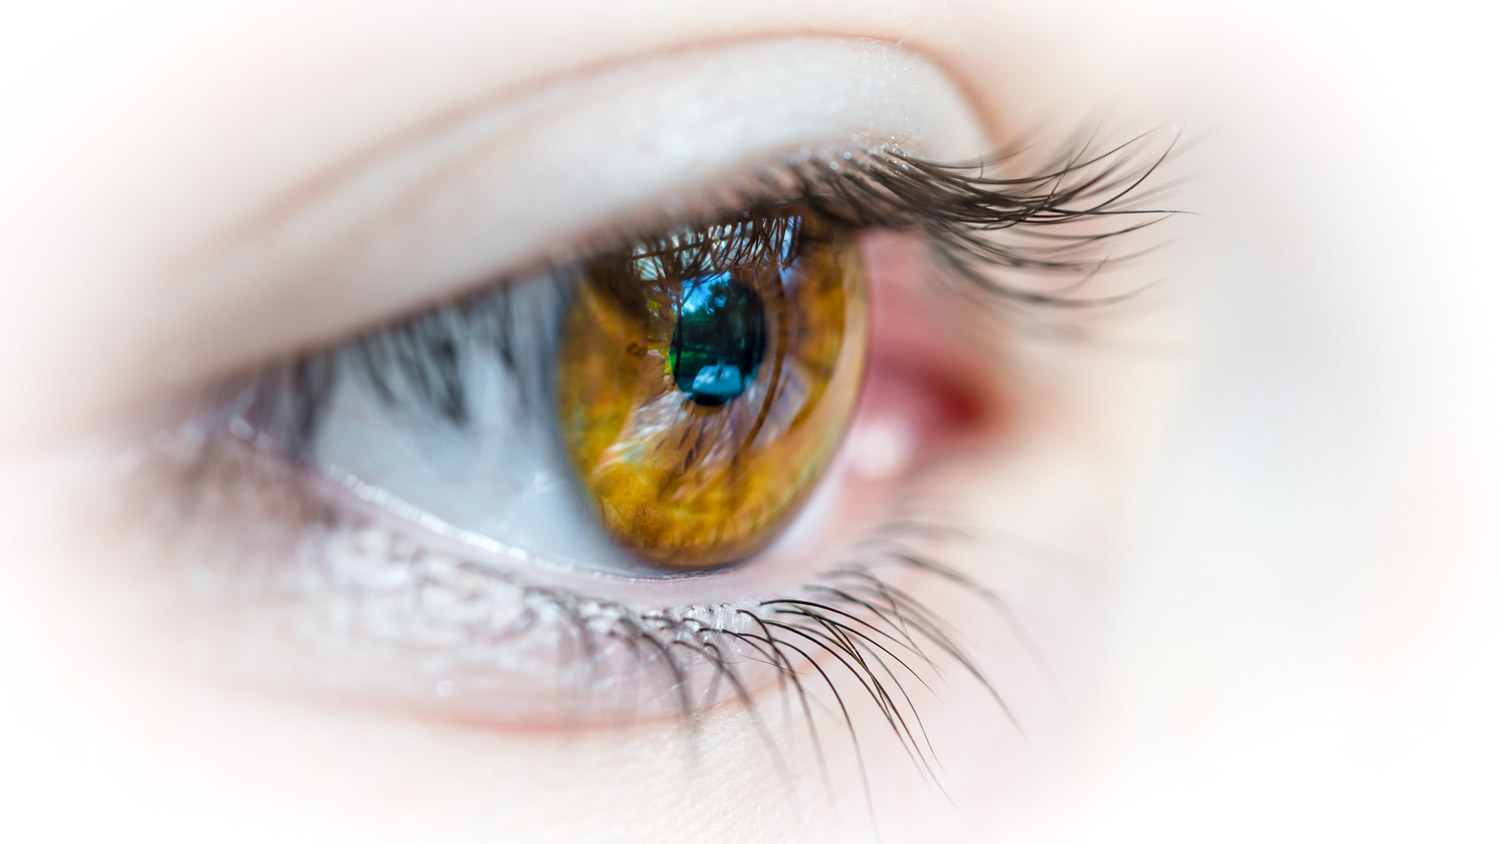 Contact Lenses - We specialize in contact lens fits, including: disposable lenses, contact lenses for astigmatism, bifocal and monovision contact lenses, gas permeable (rigid) contact lenses, colored contact lenses, and more!